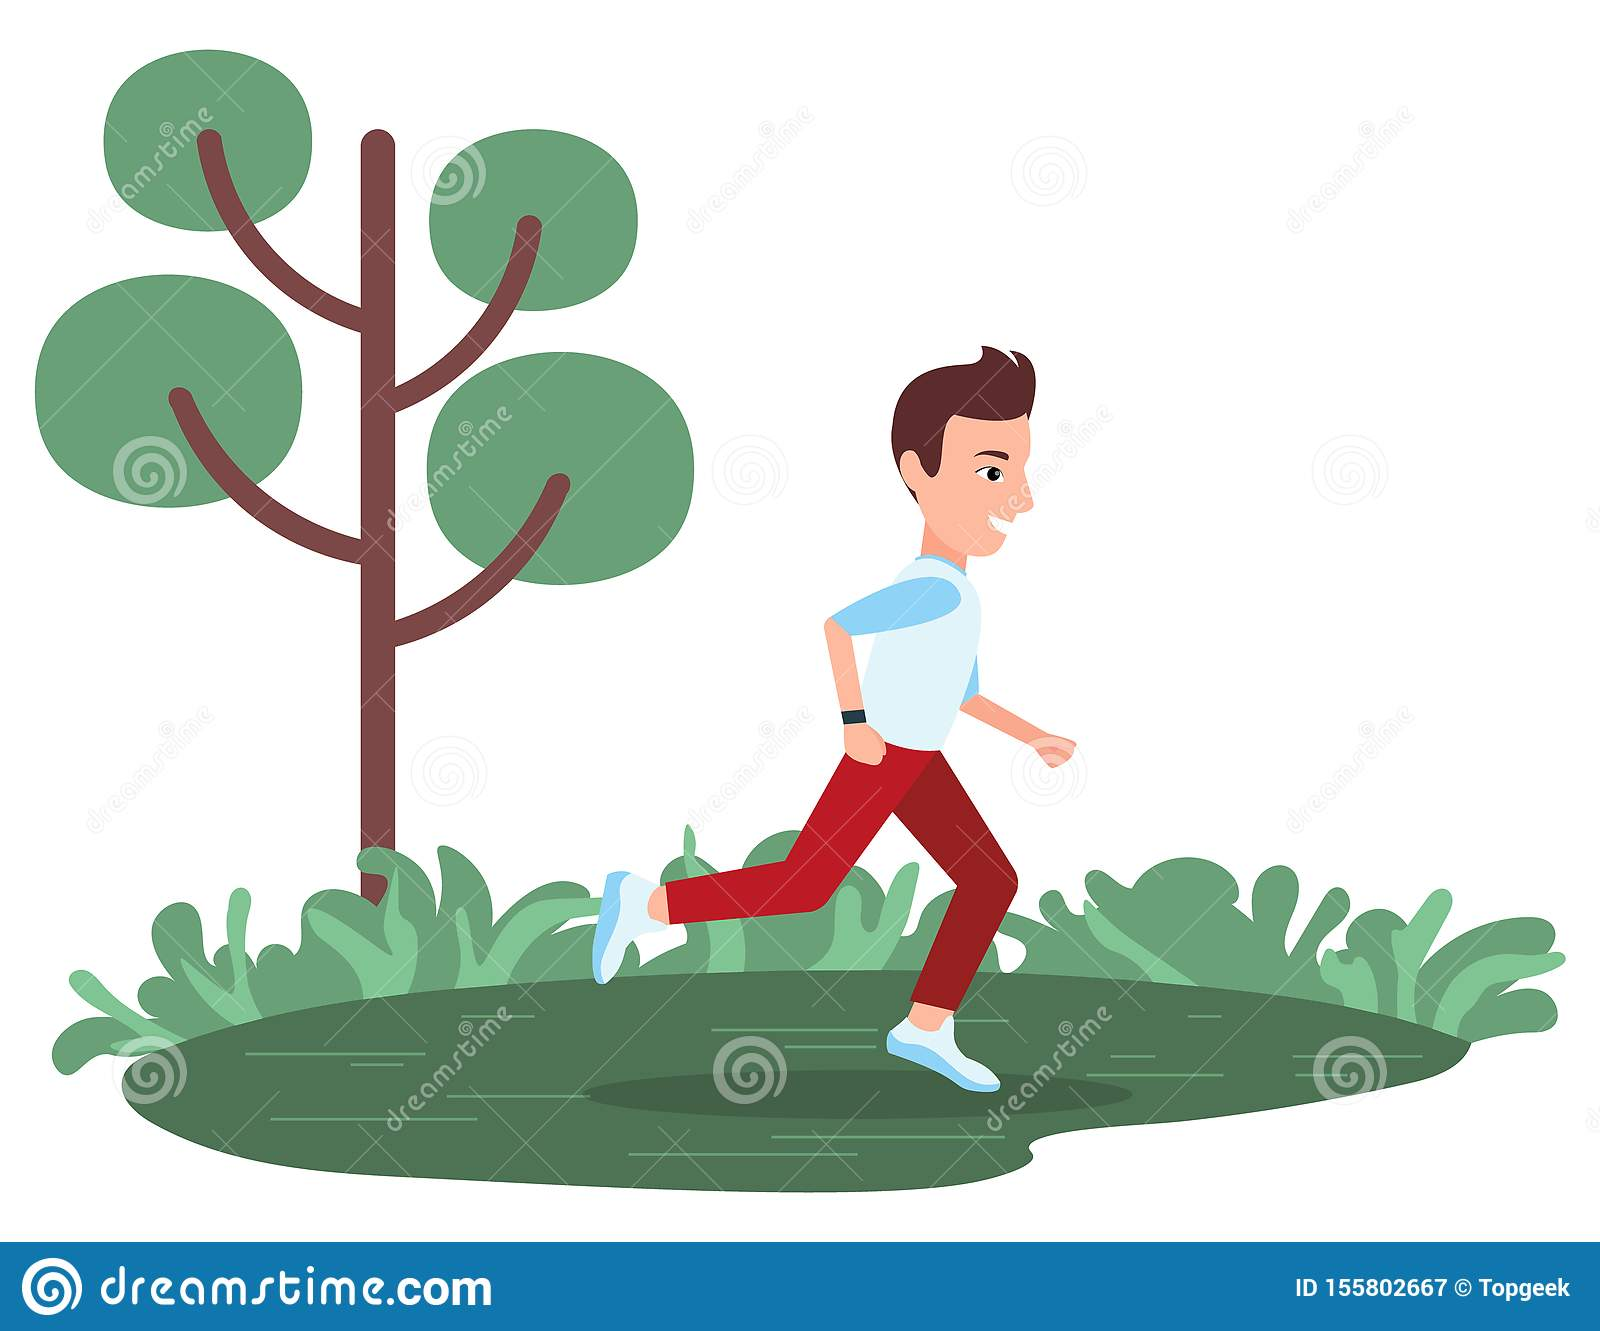 Boy Running In Green Park Tree And Grass Isolated Stock Vector Illustration Of Cartoon Human 155802667 414,470 likes · 137 talking about this. https www dreamstime com boy running green park tree grass isolated field vector cartoon guy jogging outdoors forest runner jogger rest image155802667